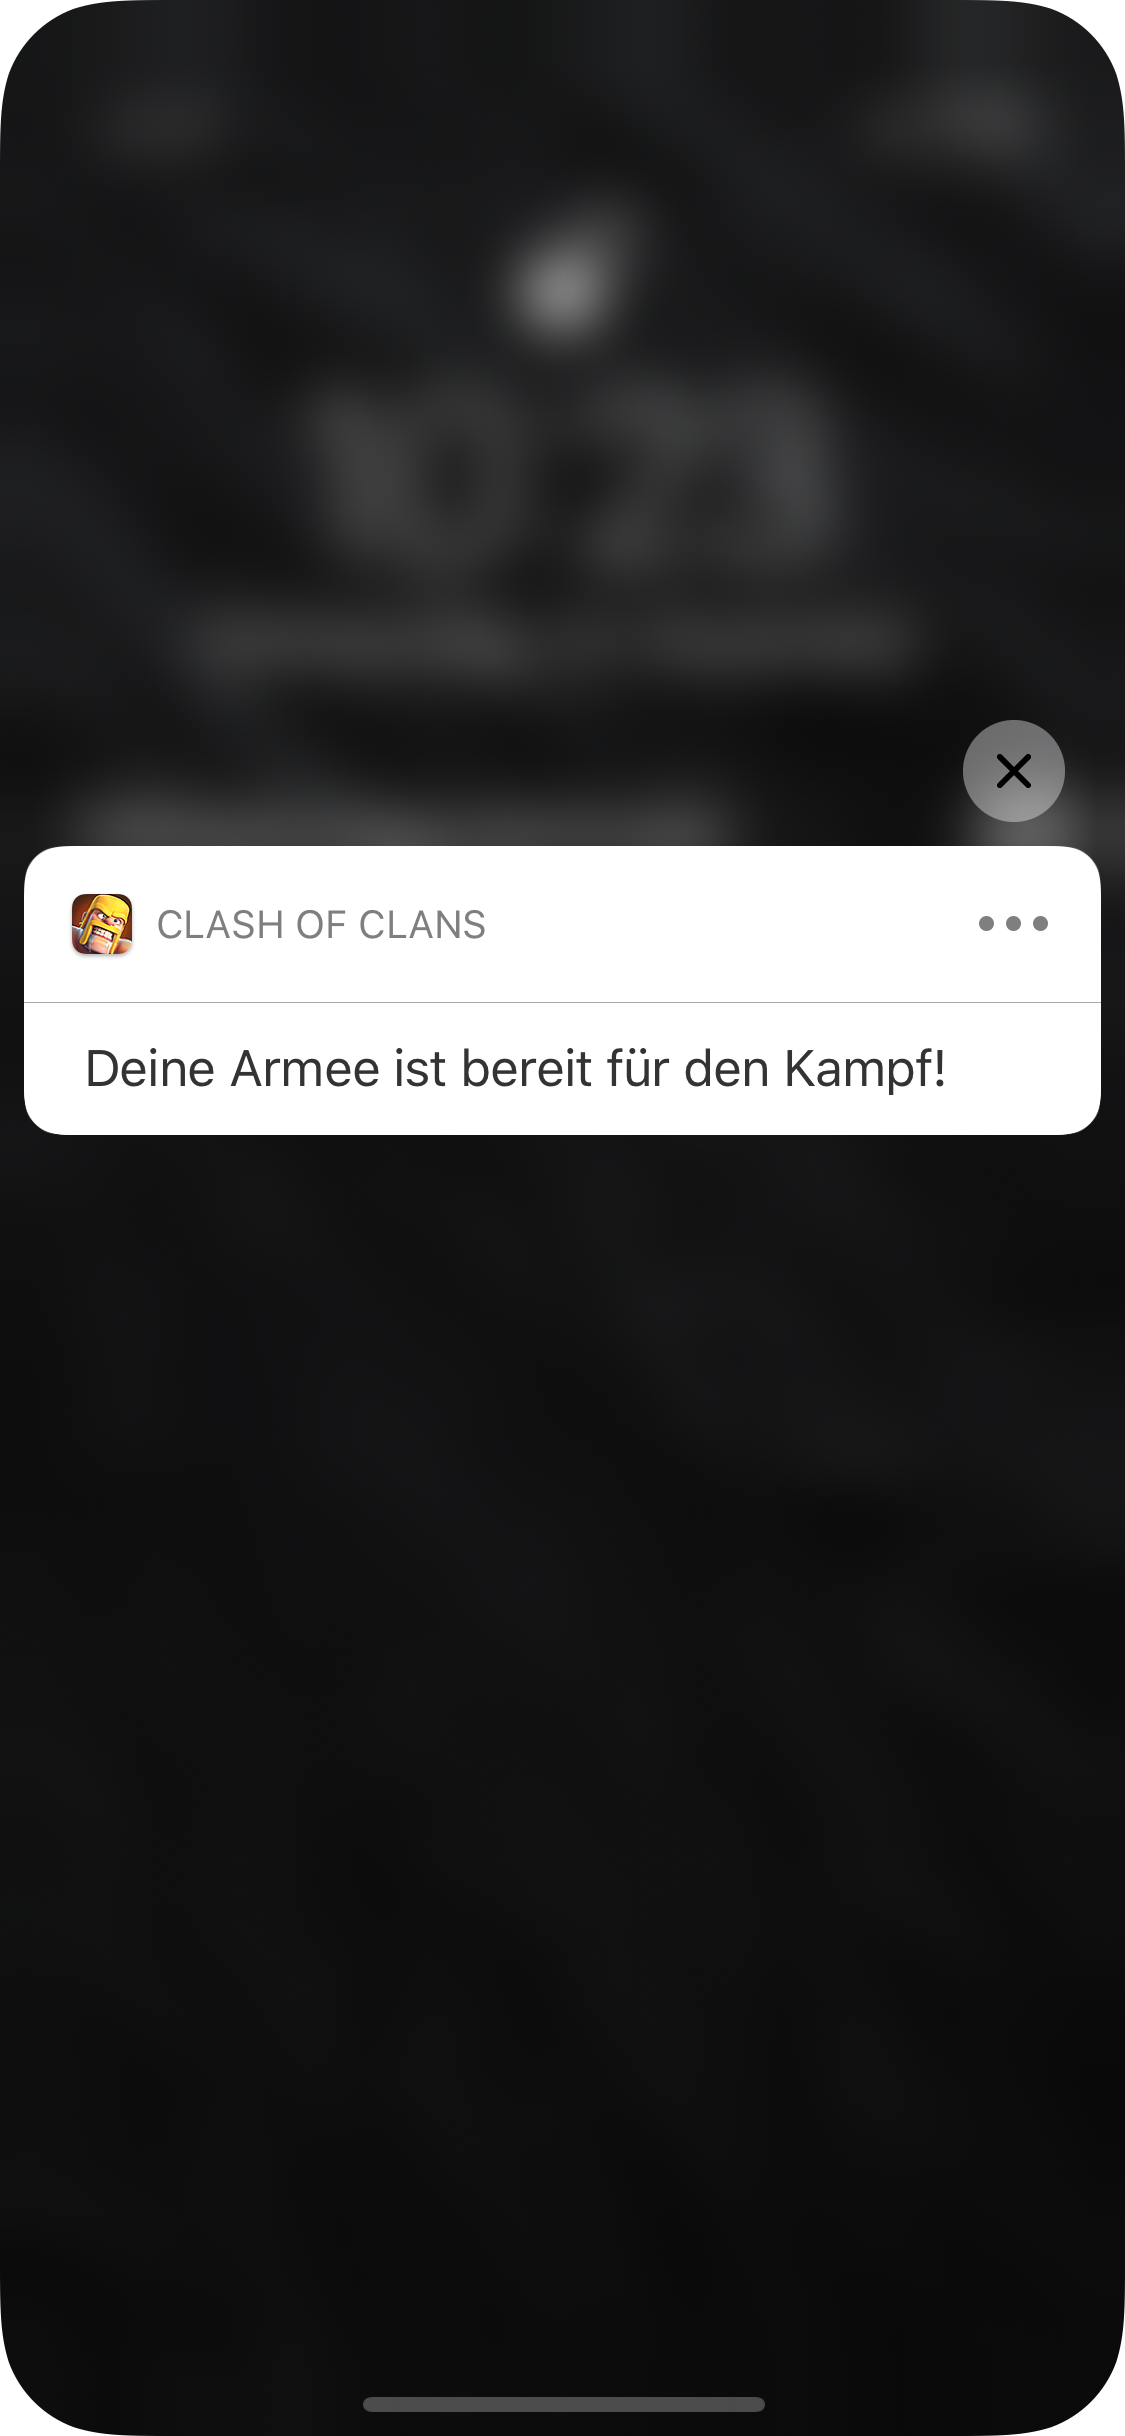 Darstellung einer Push Notification